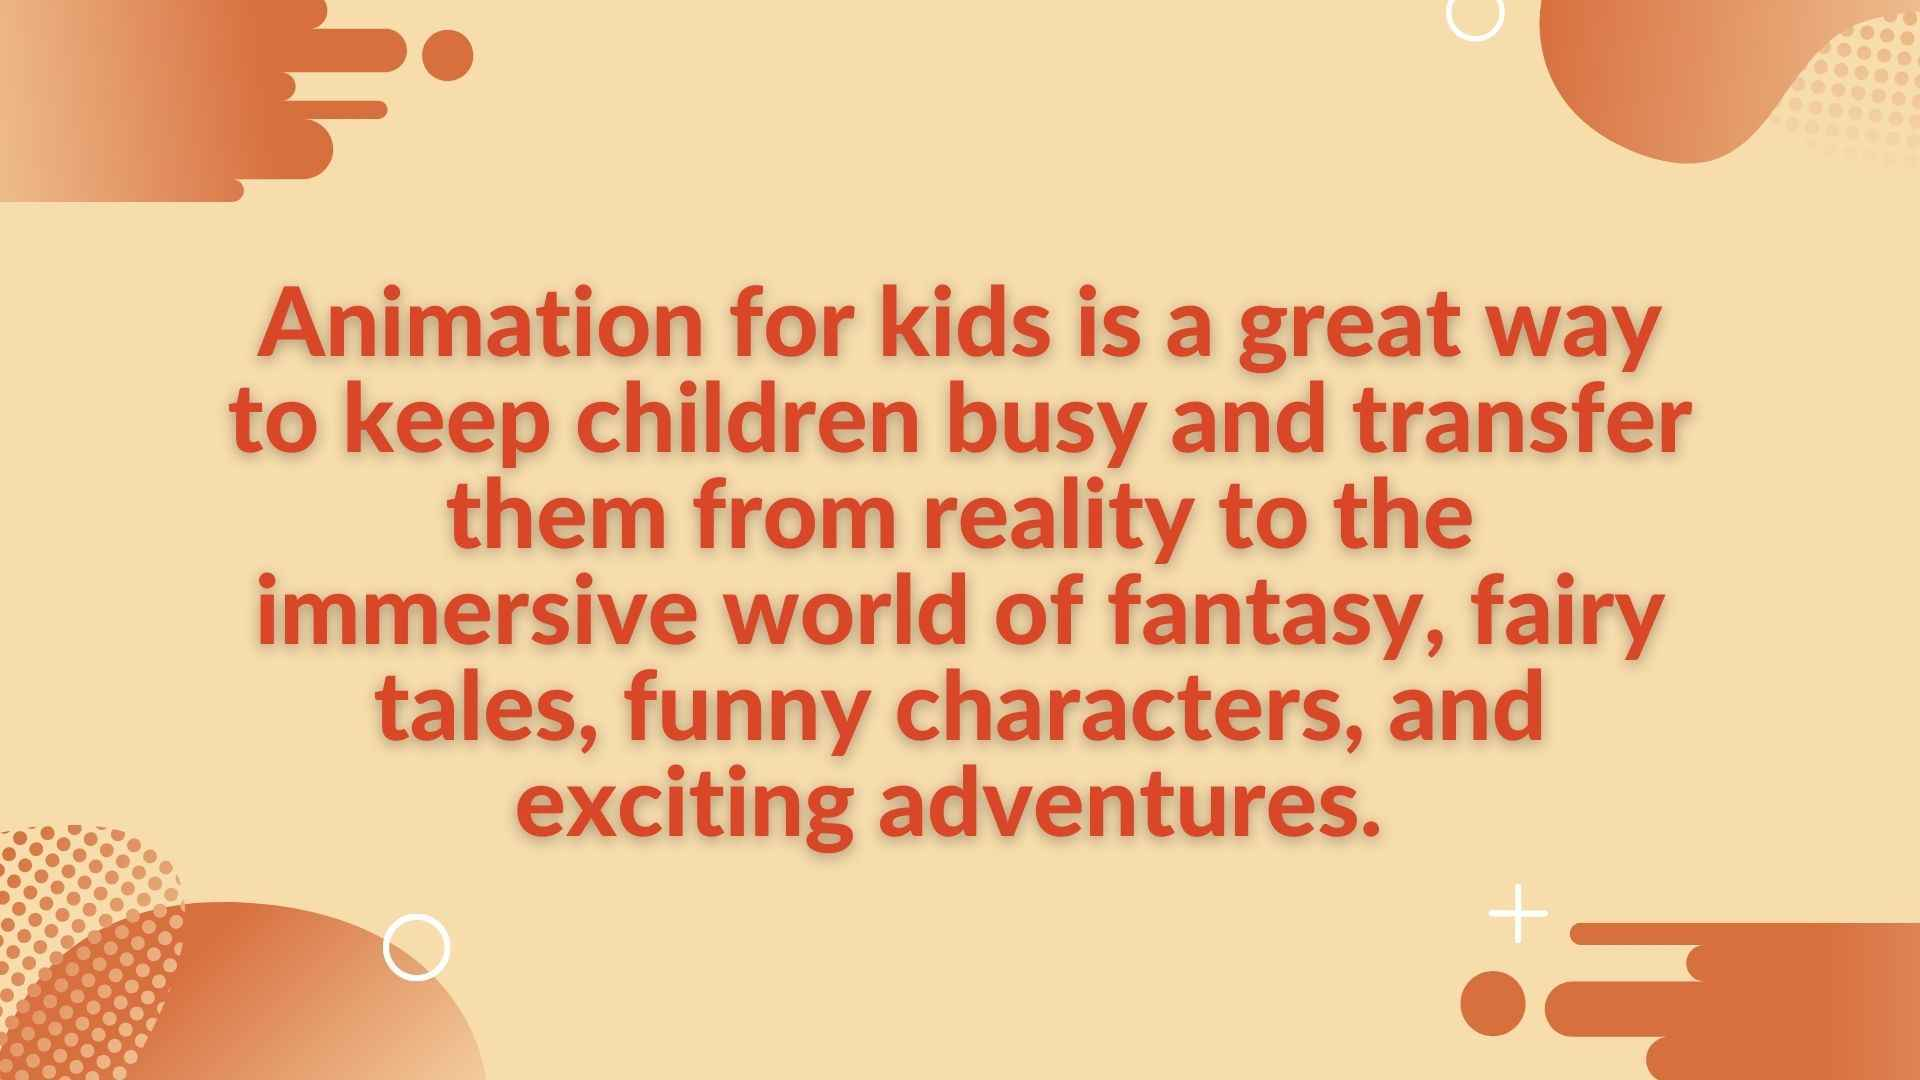 Animation for kids is a great way to keep children busy and transfer them from reality to the immersive world